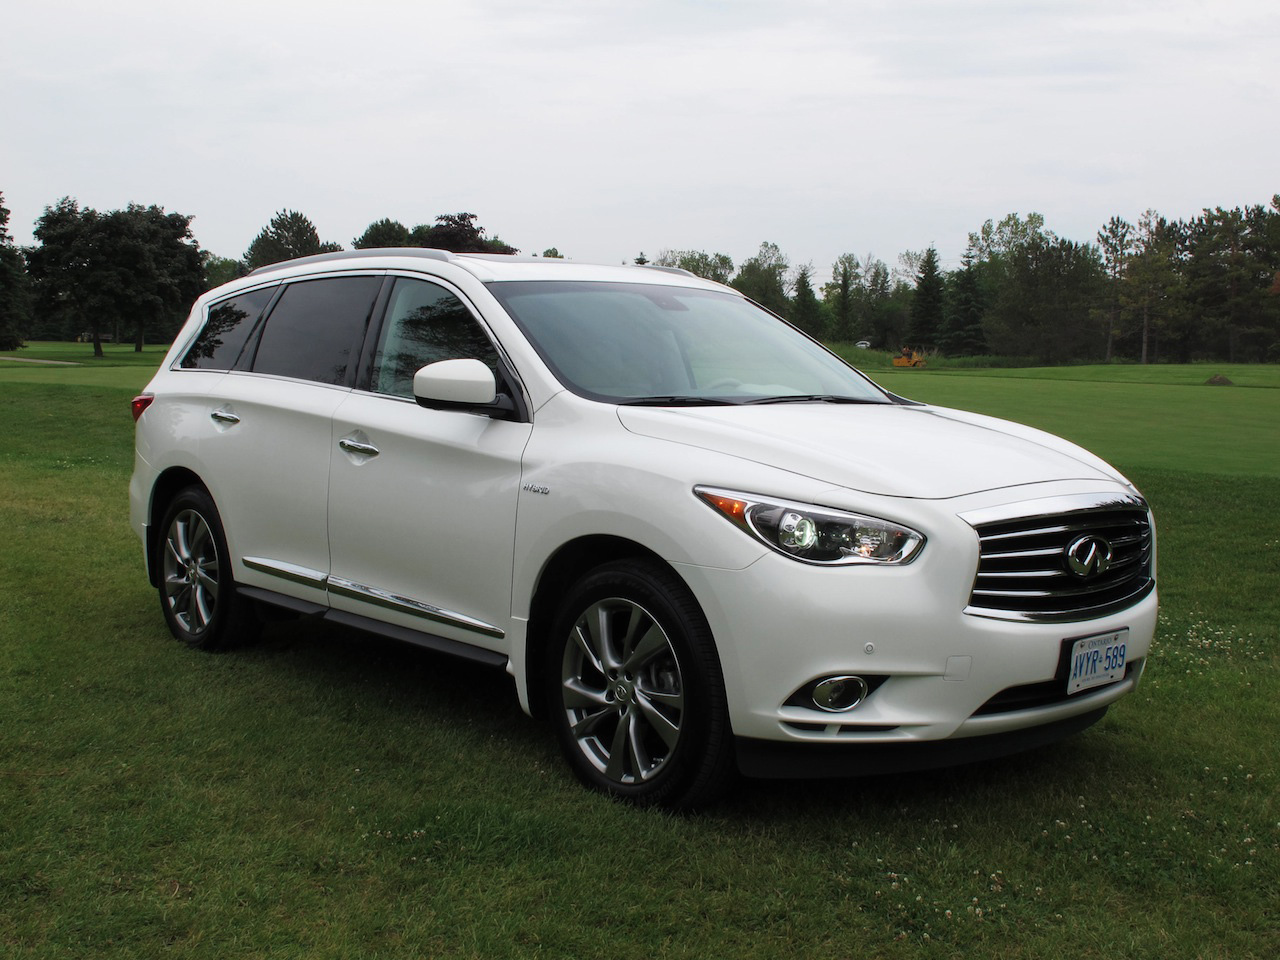 2014 infiniti qx60 hybrid chinese review cars photos test drives and reviews canadian. Black Bedroom Furniture Sets. Home Design Ideas